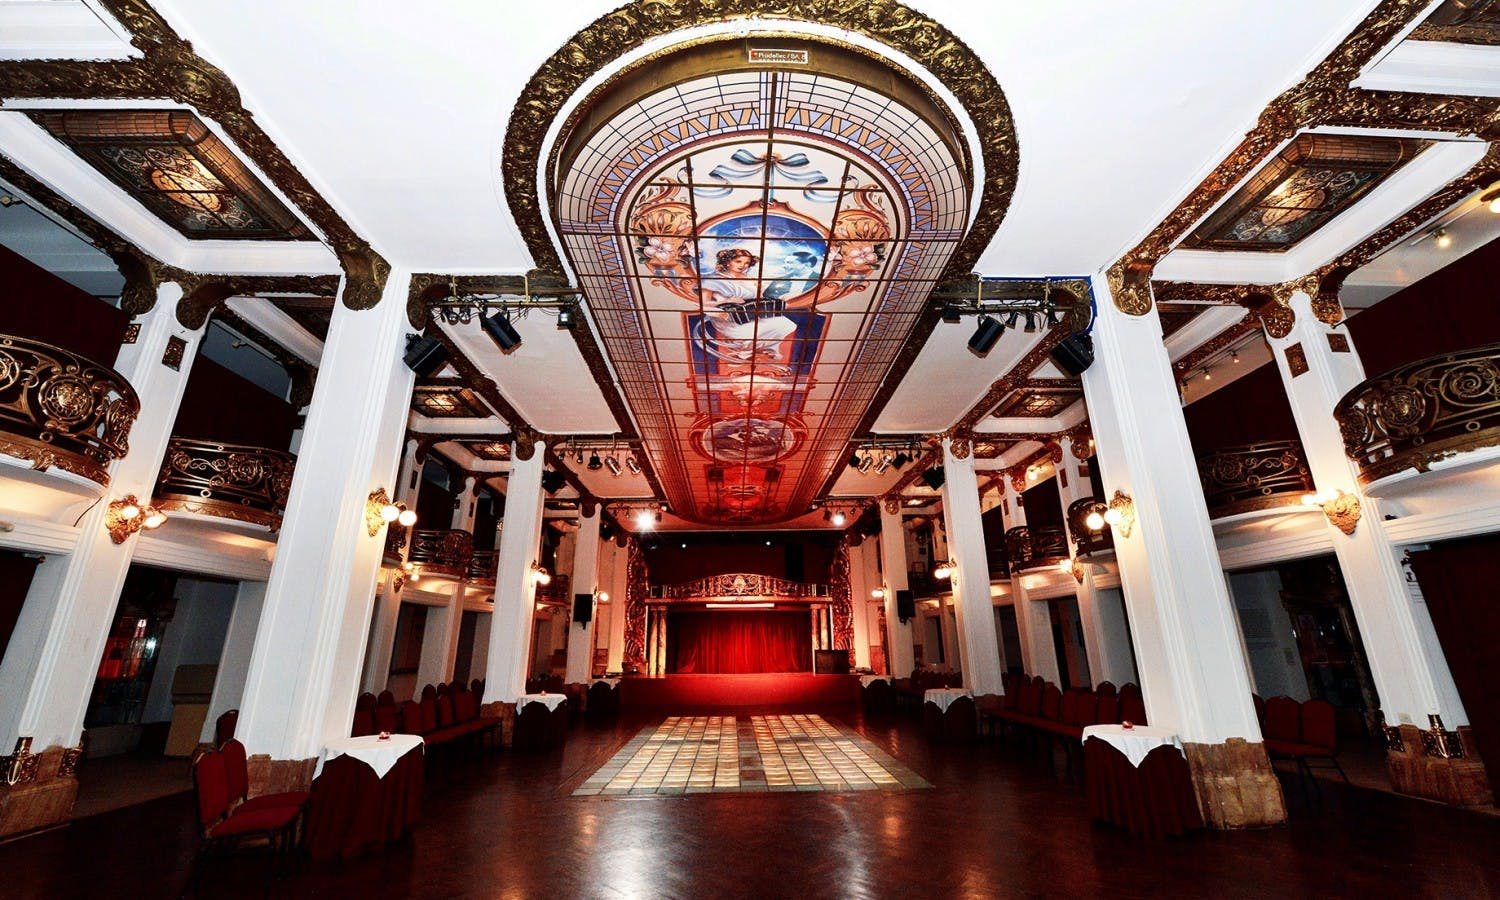 Piazzolla Dinner and Tango show in Buenos Aires